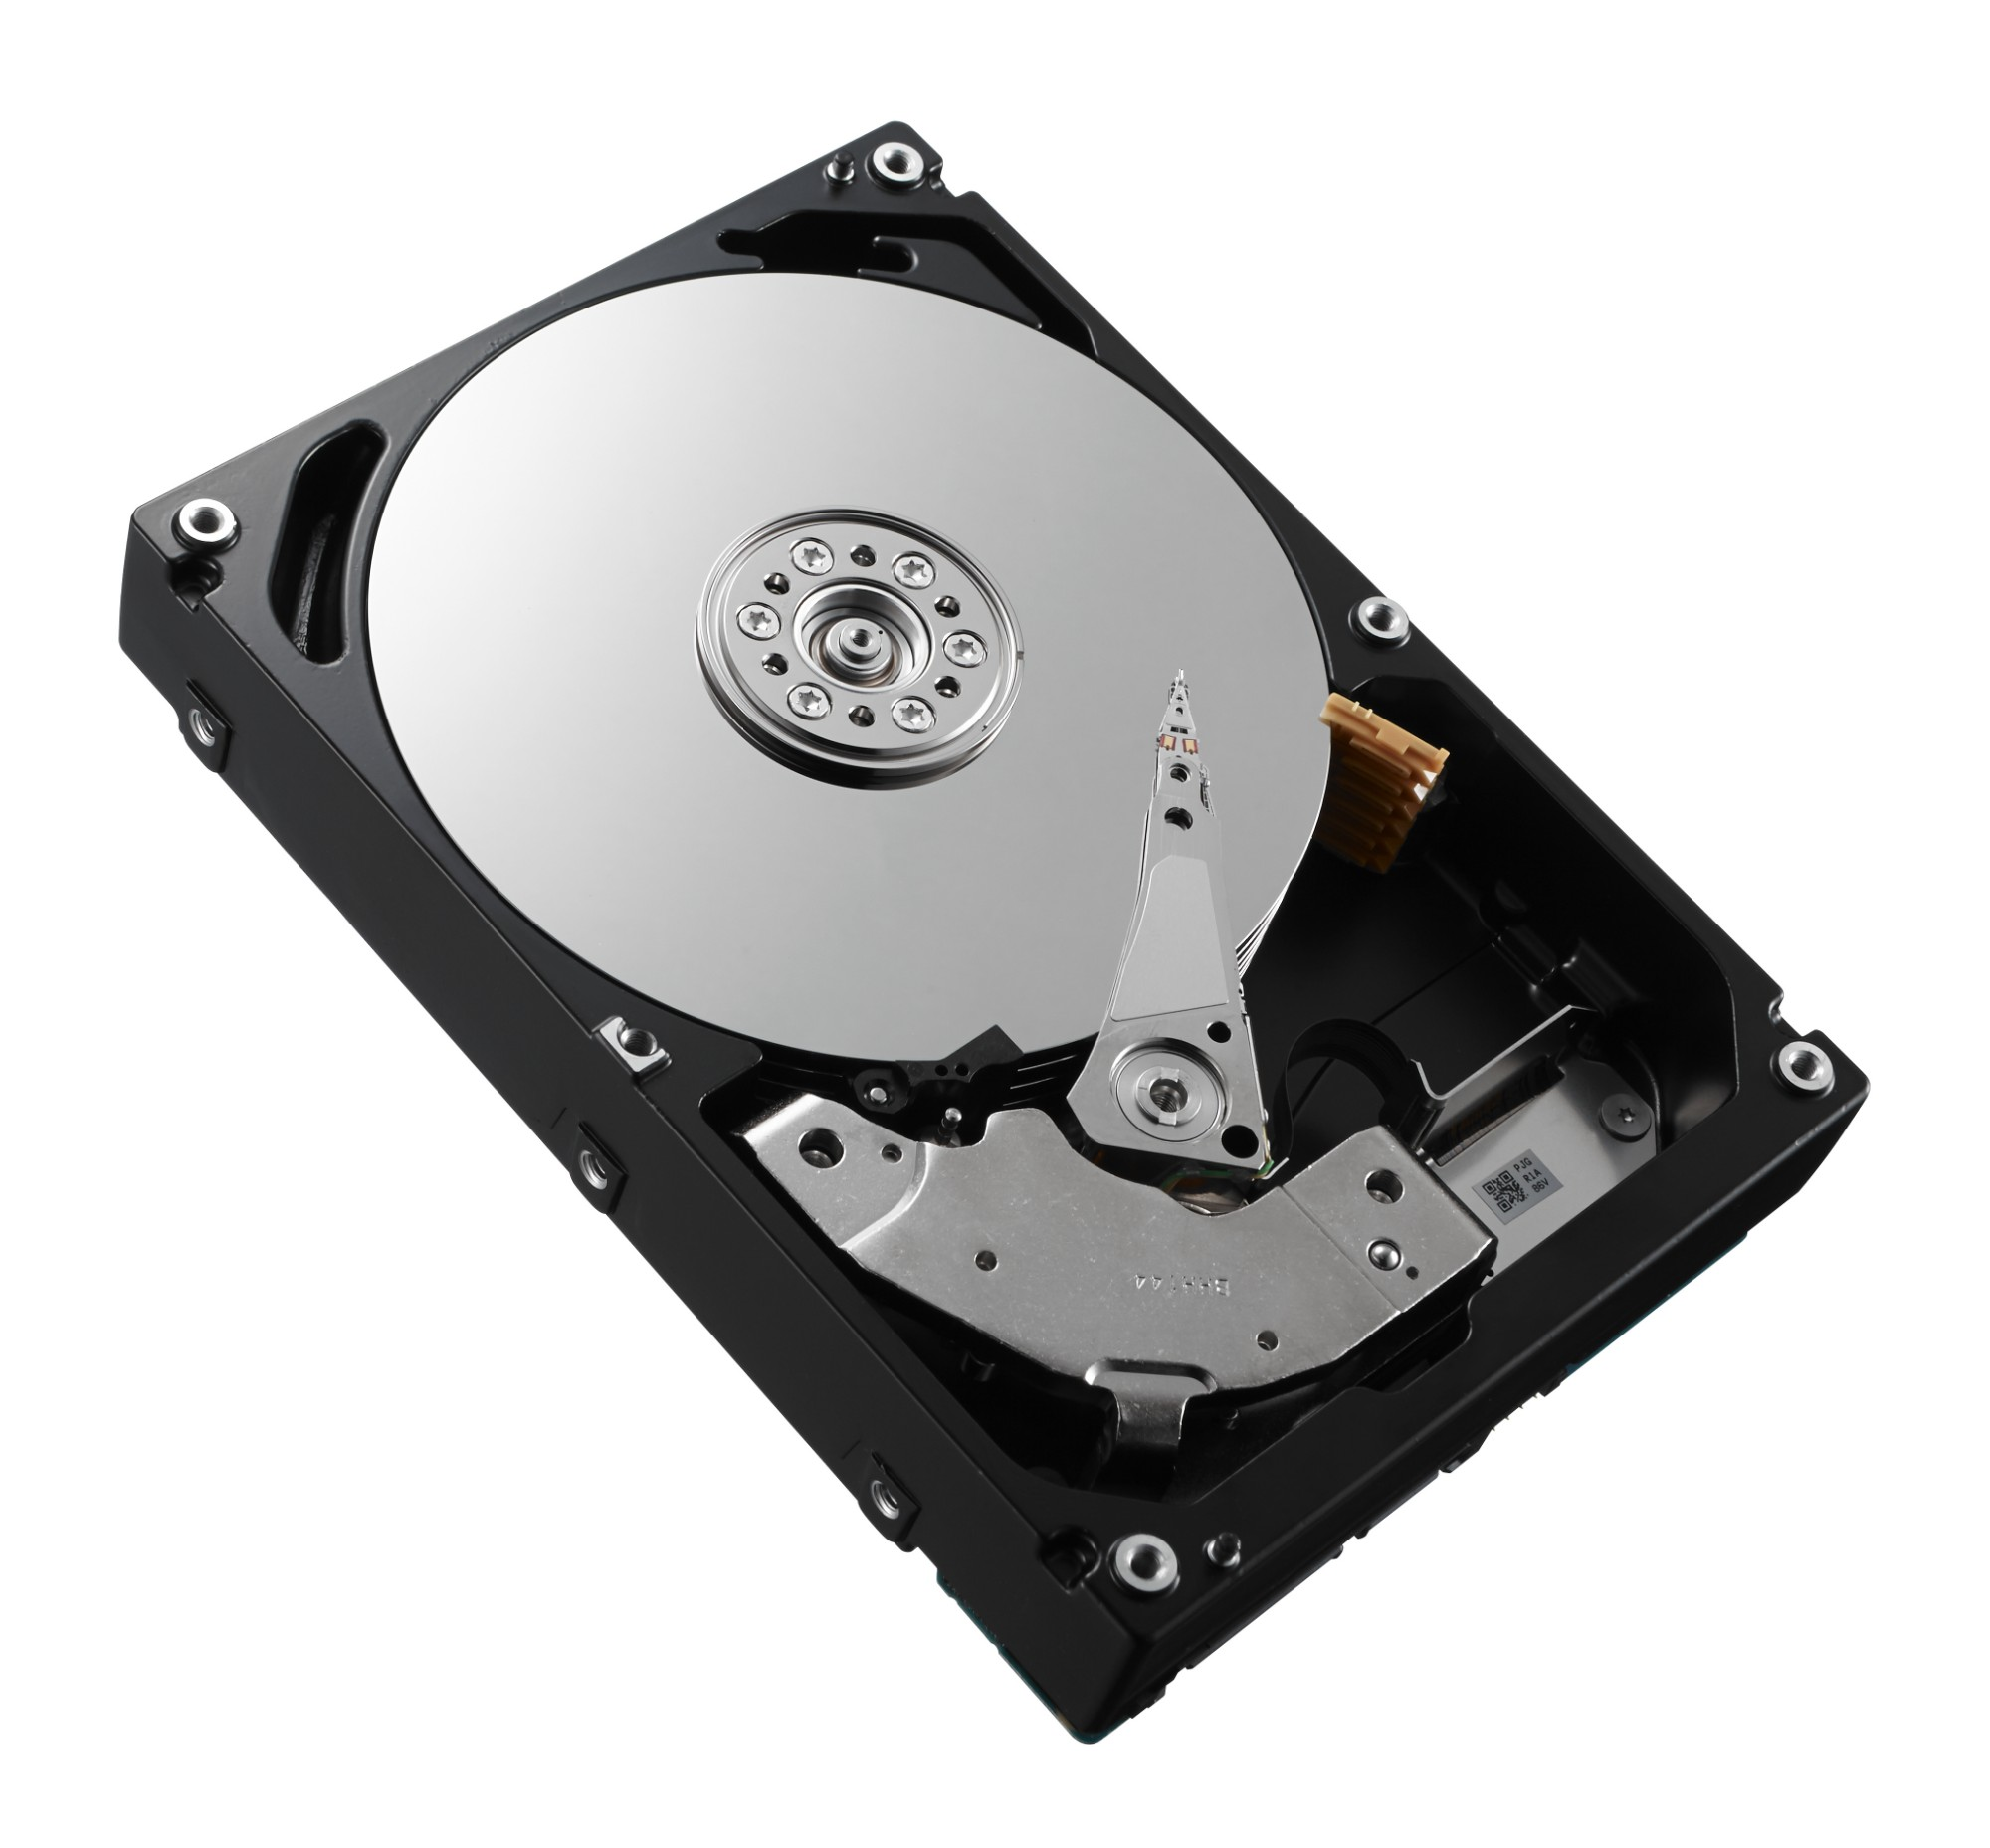 DELL 390-0476 INTERNAL HARD DRIVE 3.5